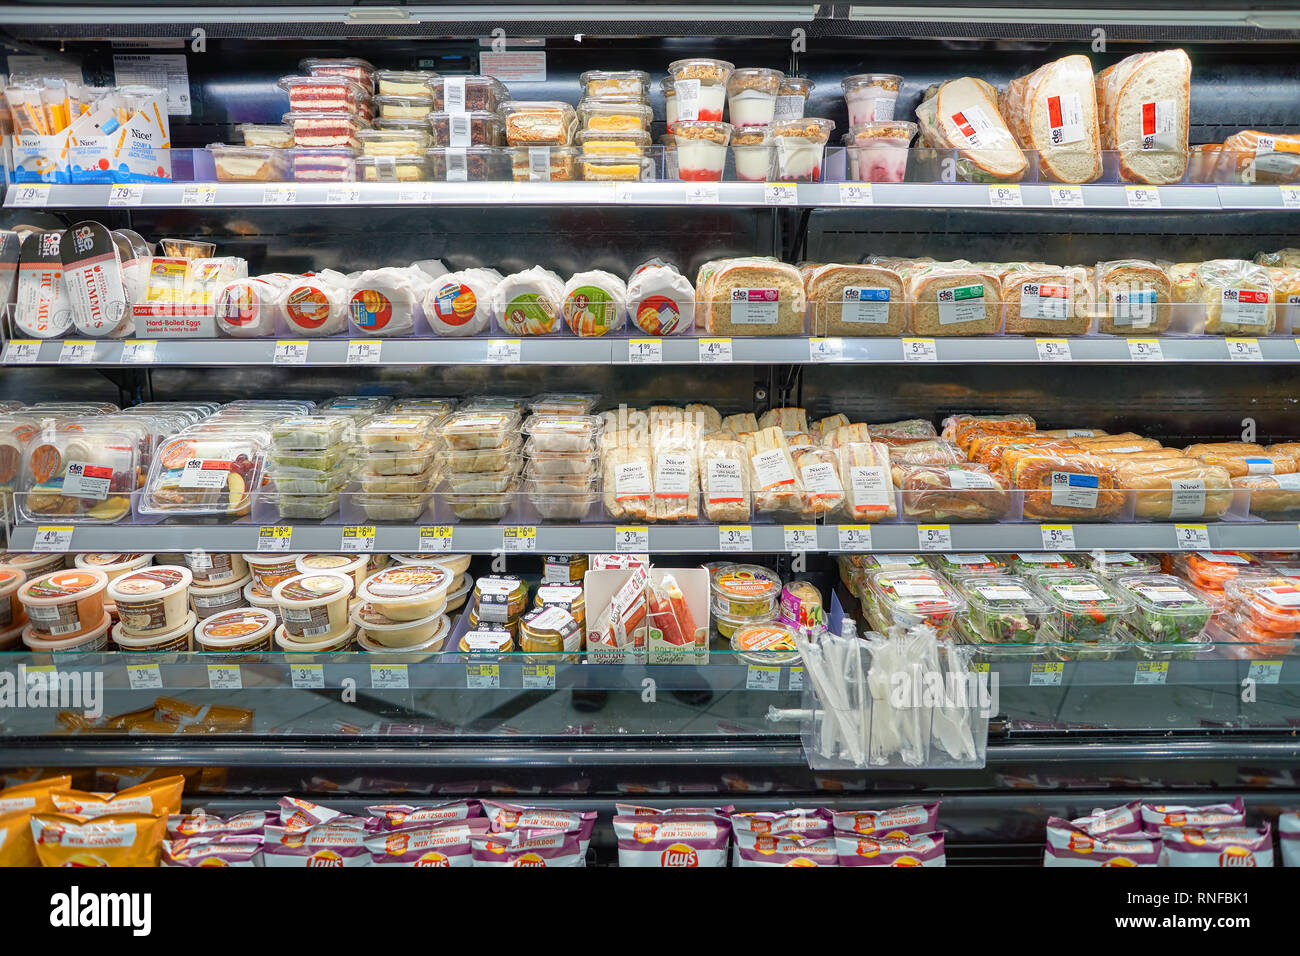 Inside Walgreens Store High Resolution Stock Photography And